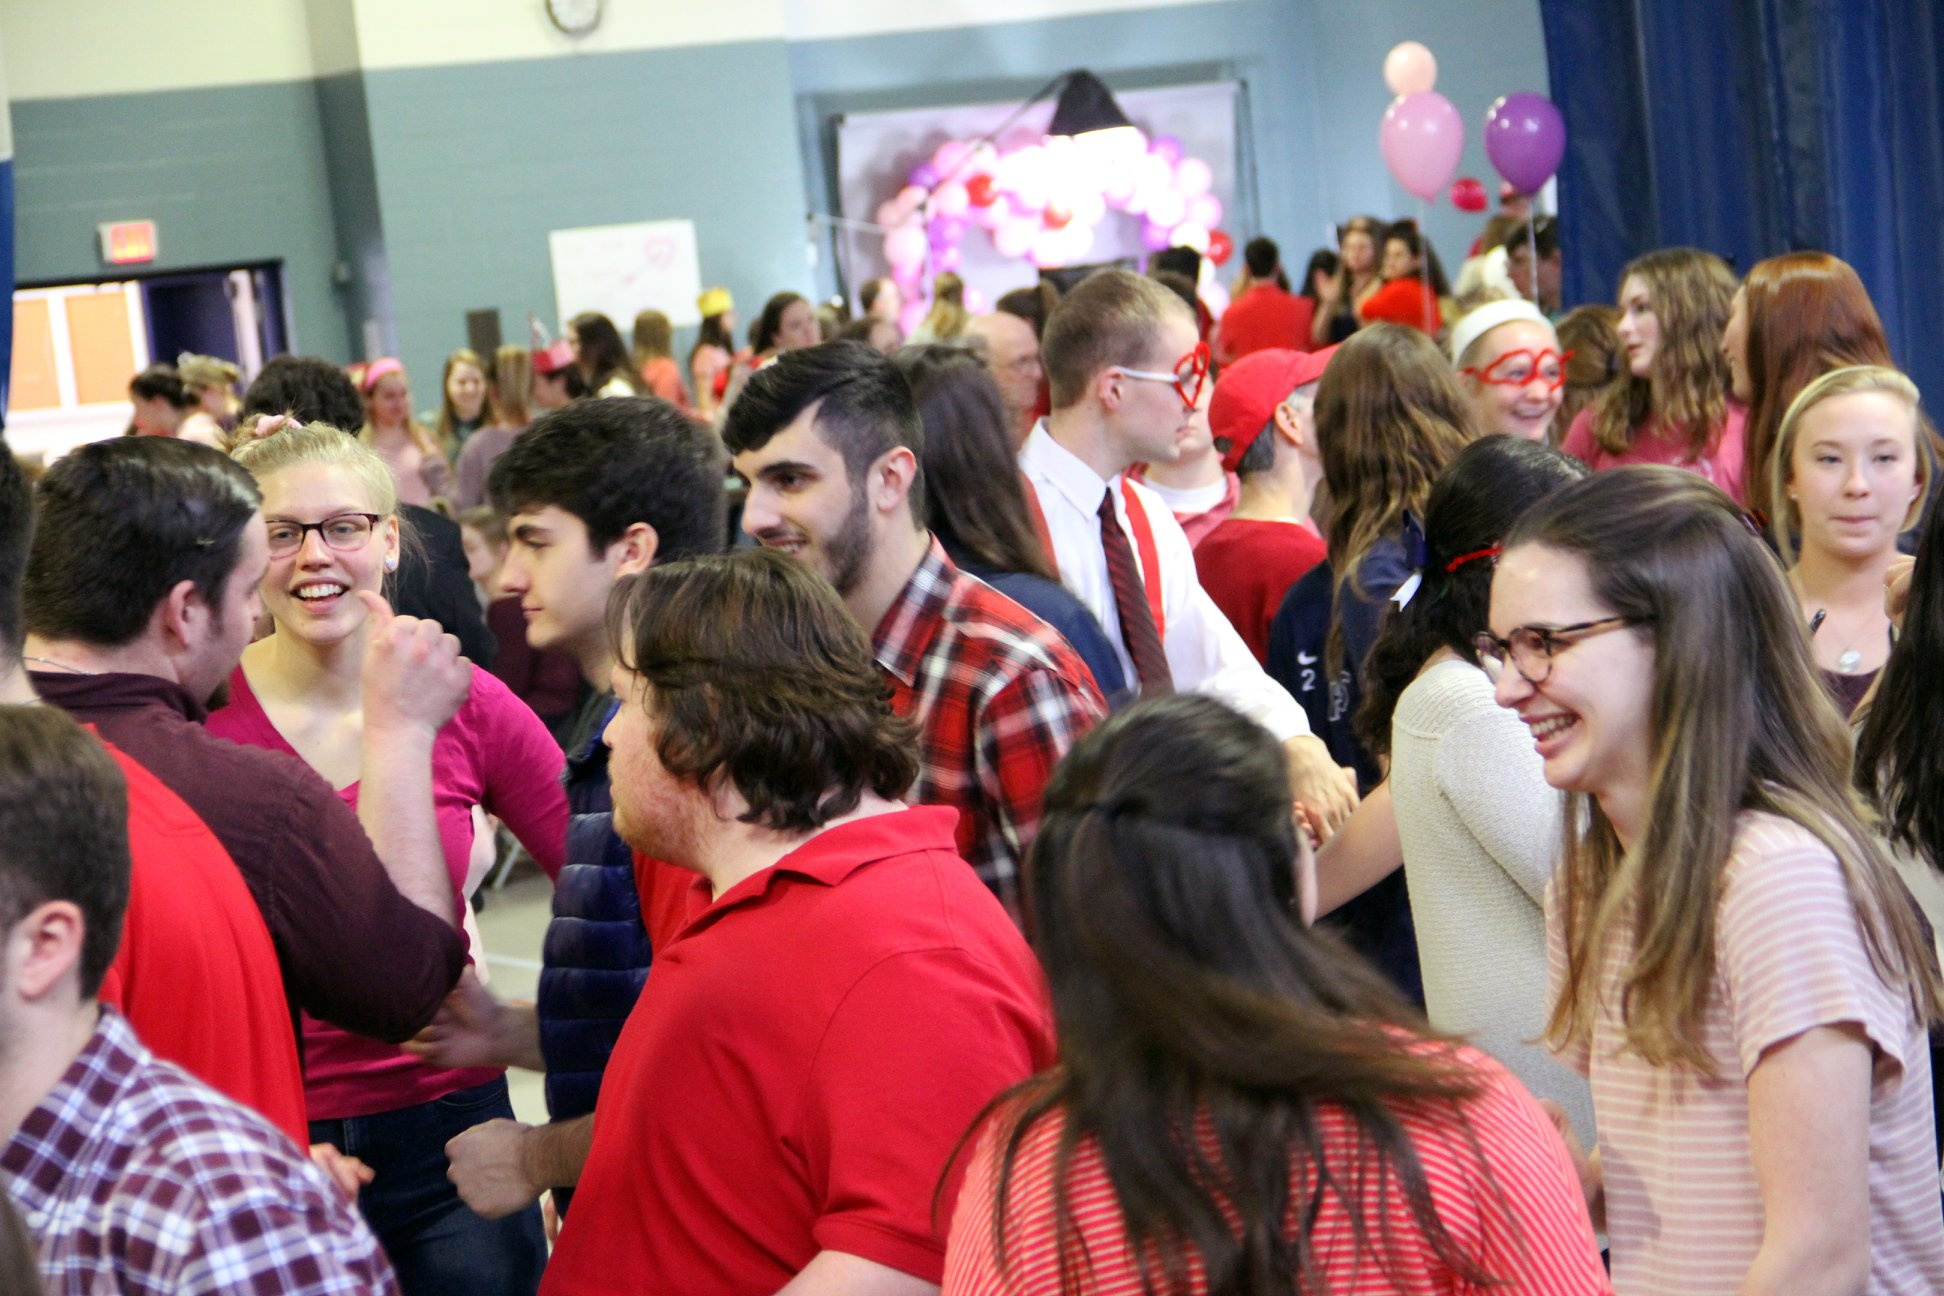 people dancing at the Valentine's Day dance